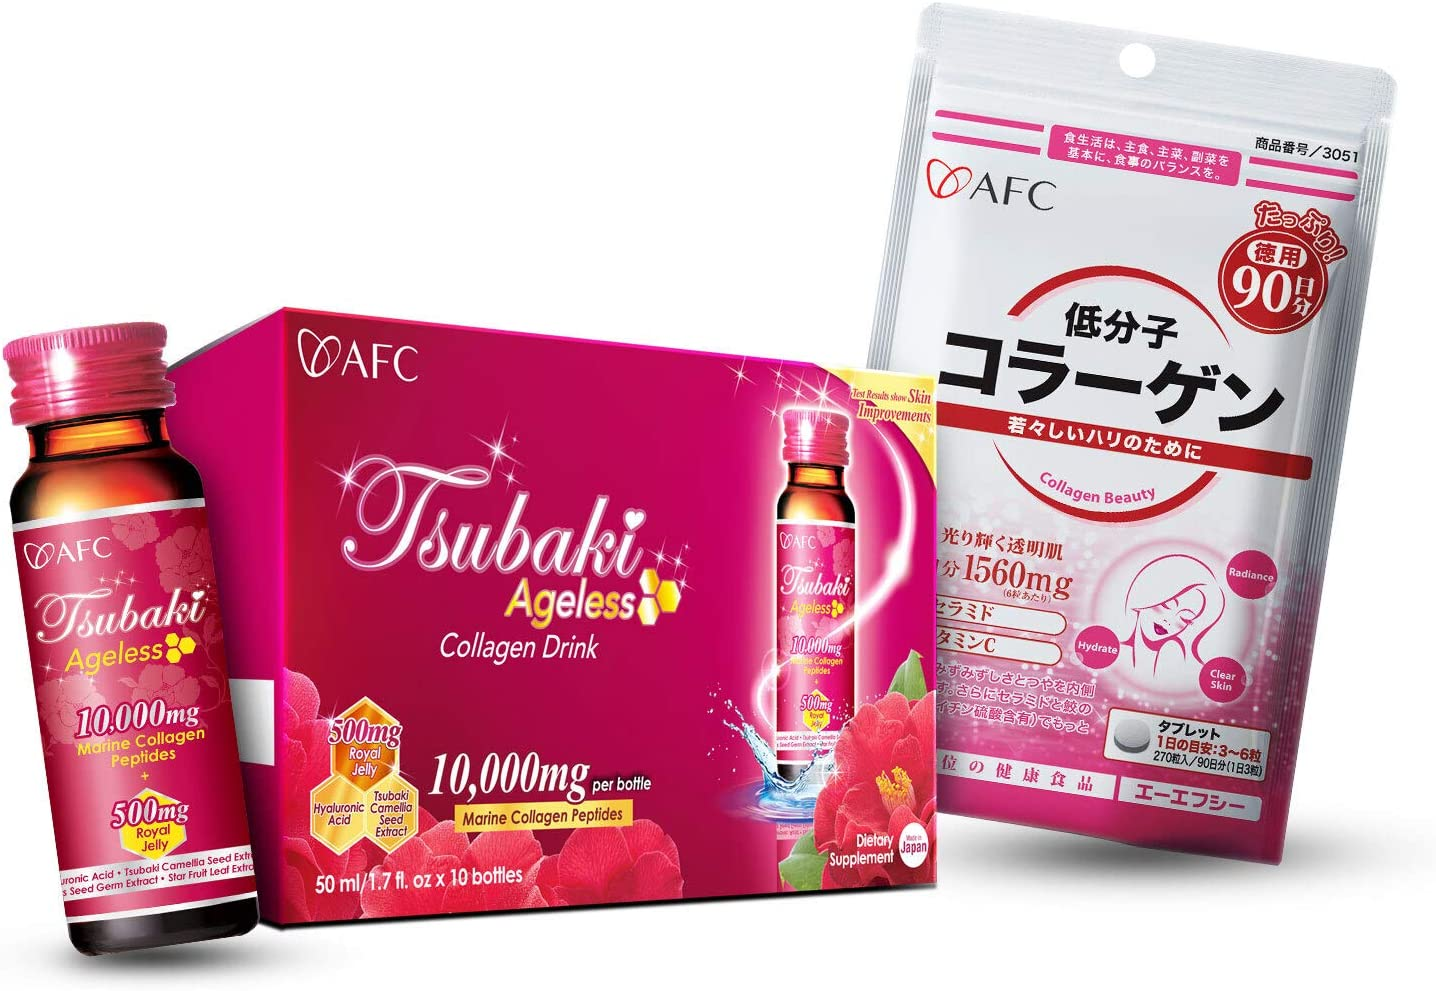 AFC Japan Tsubaki Ageless Beauty Collagen Drink with 10,000mg Marine Collagen Peptides & Royal Jelly + Collagen Beauty, 270ct Pills, for Anti-Aging, Skin Revitalization, Hair, Nails & Joints Health